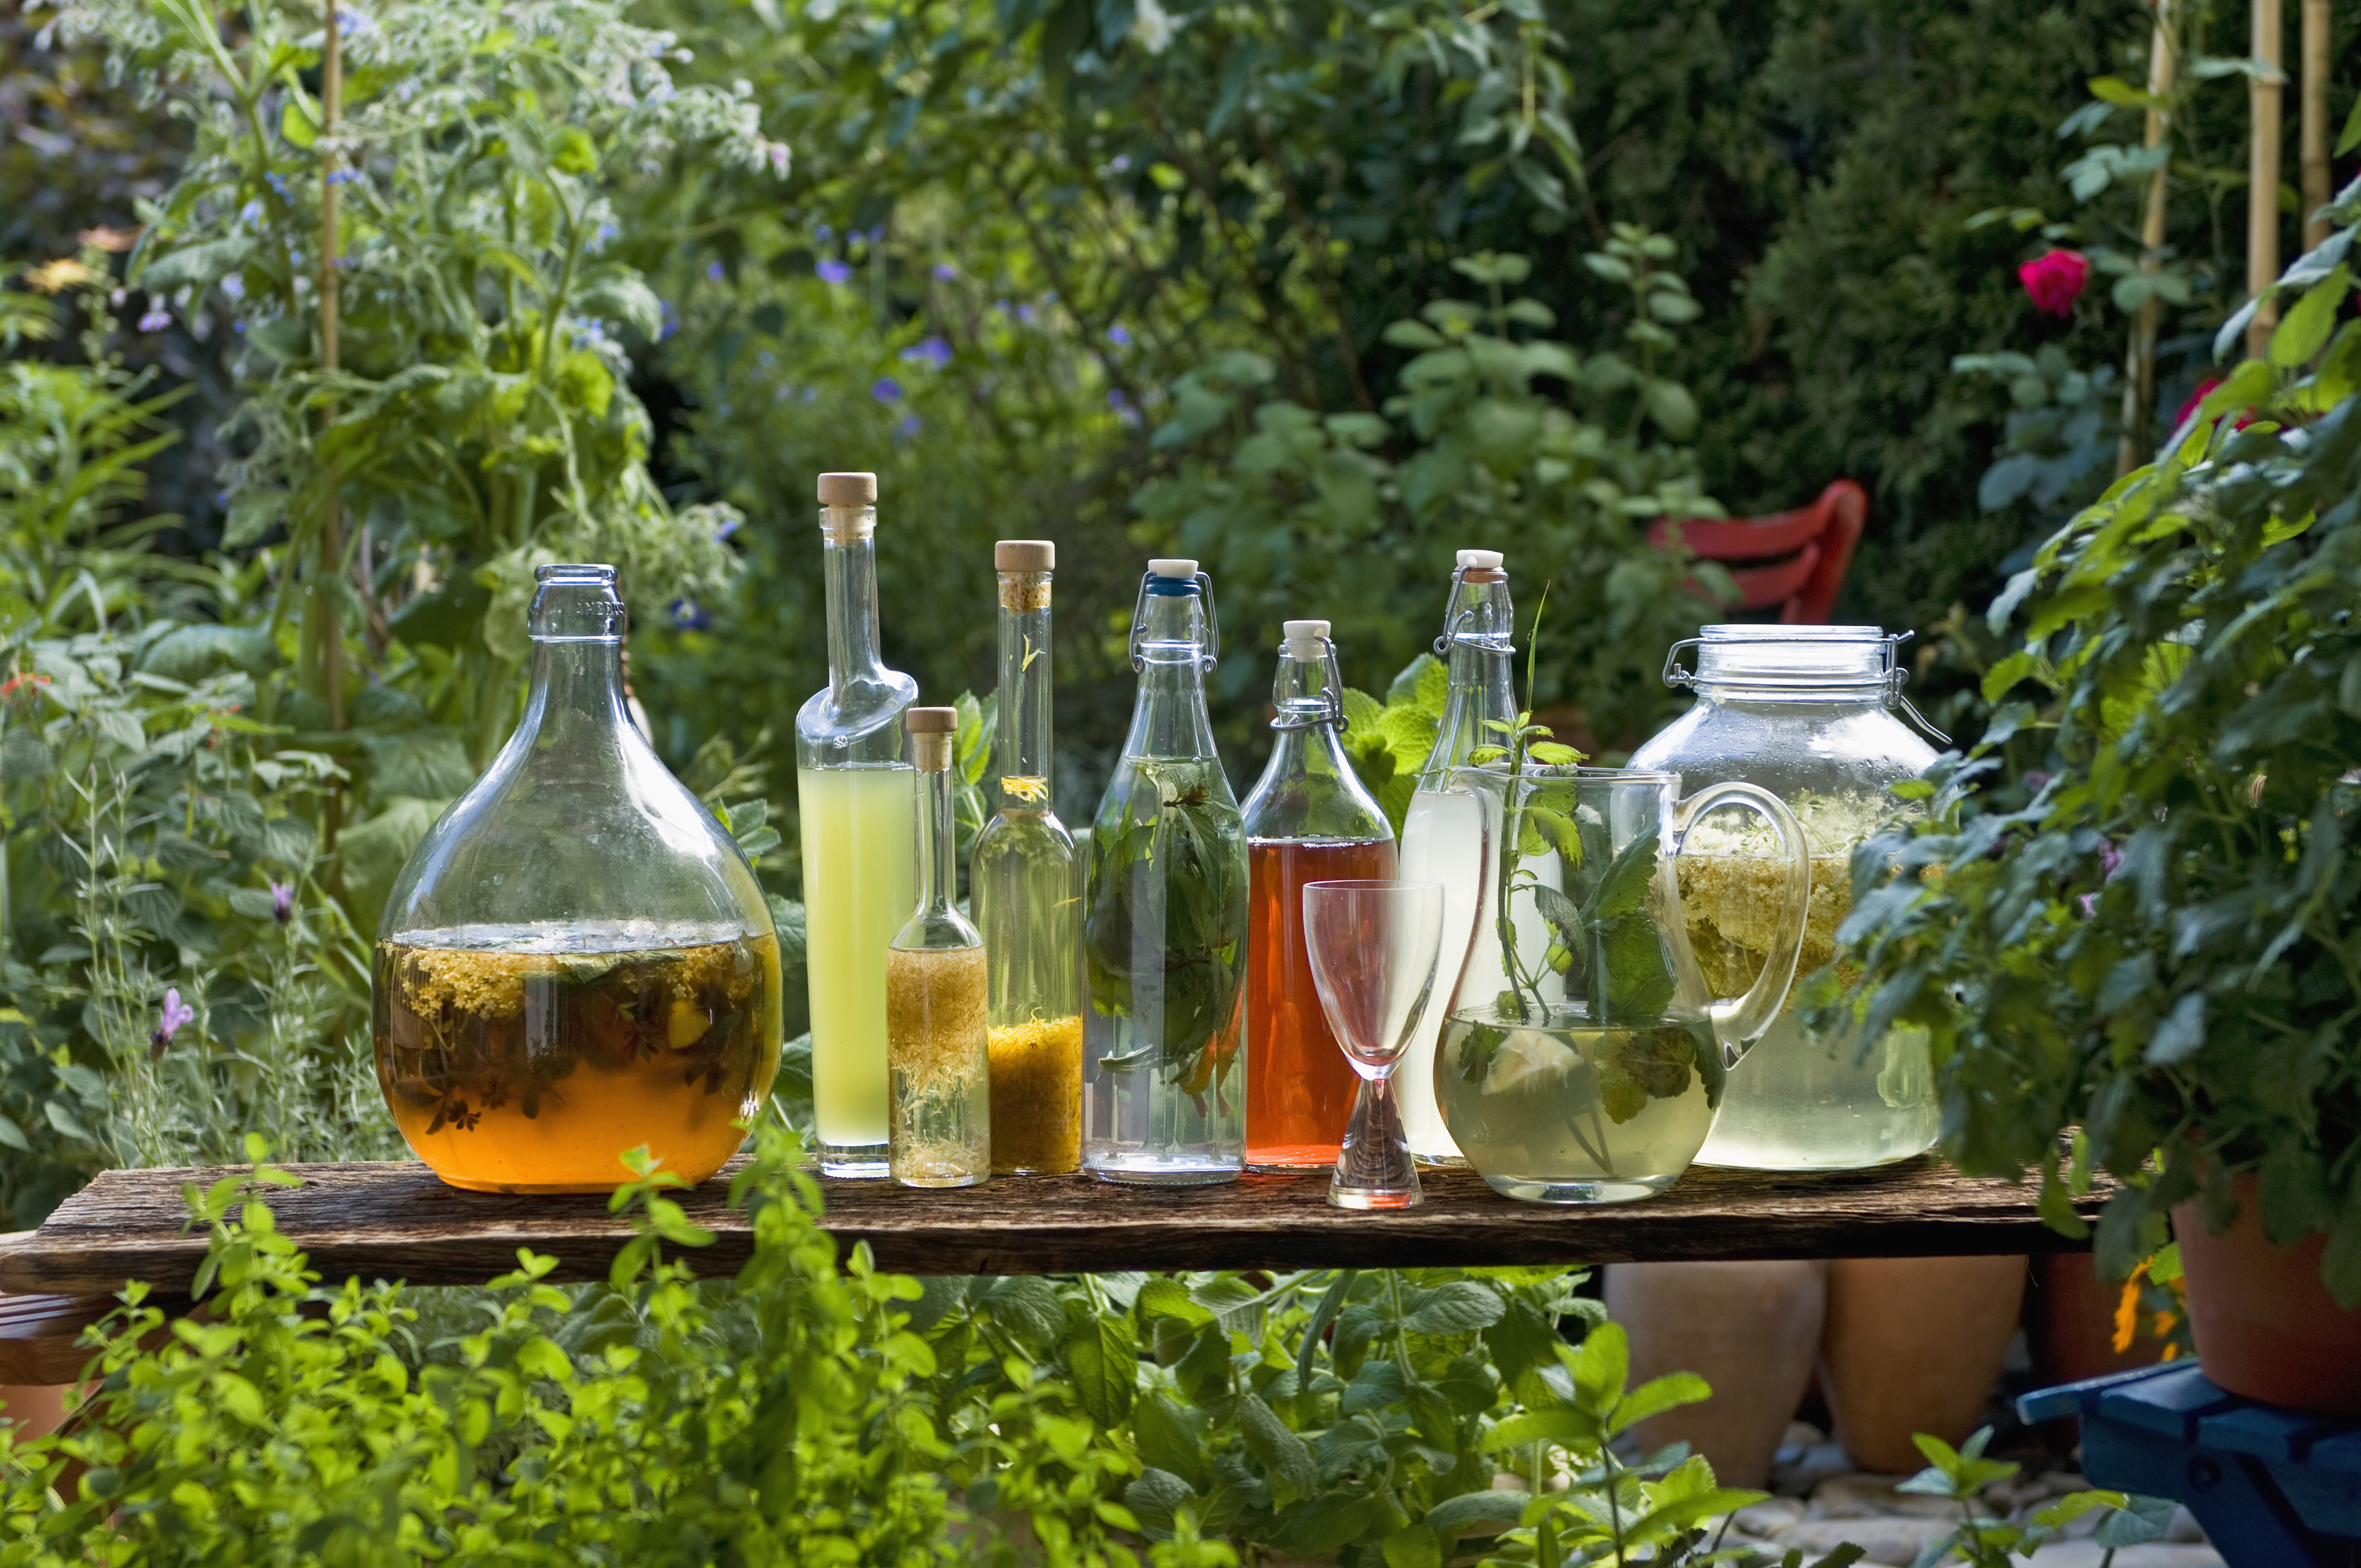 Lemongrass, Mushrooms and Beyond: Plant Your Cocktail Garden Now